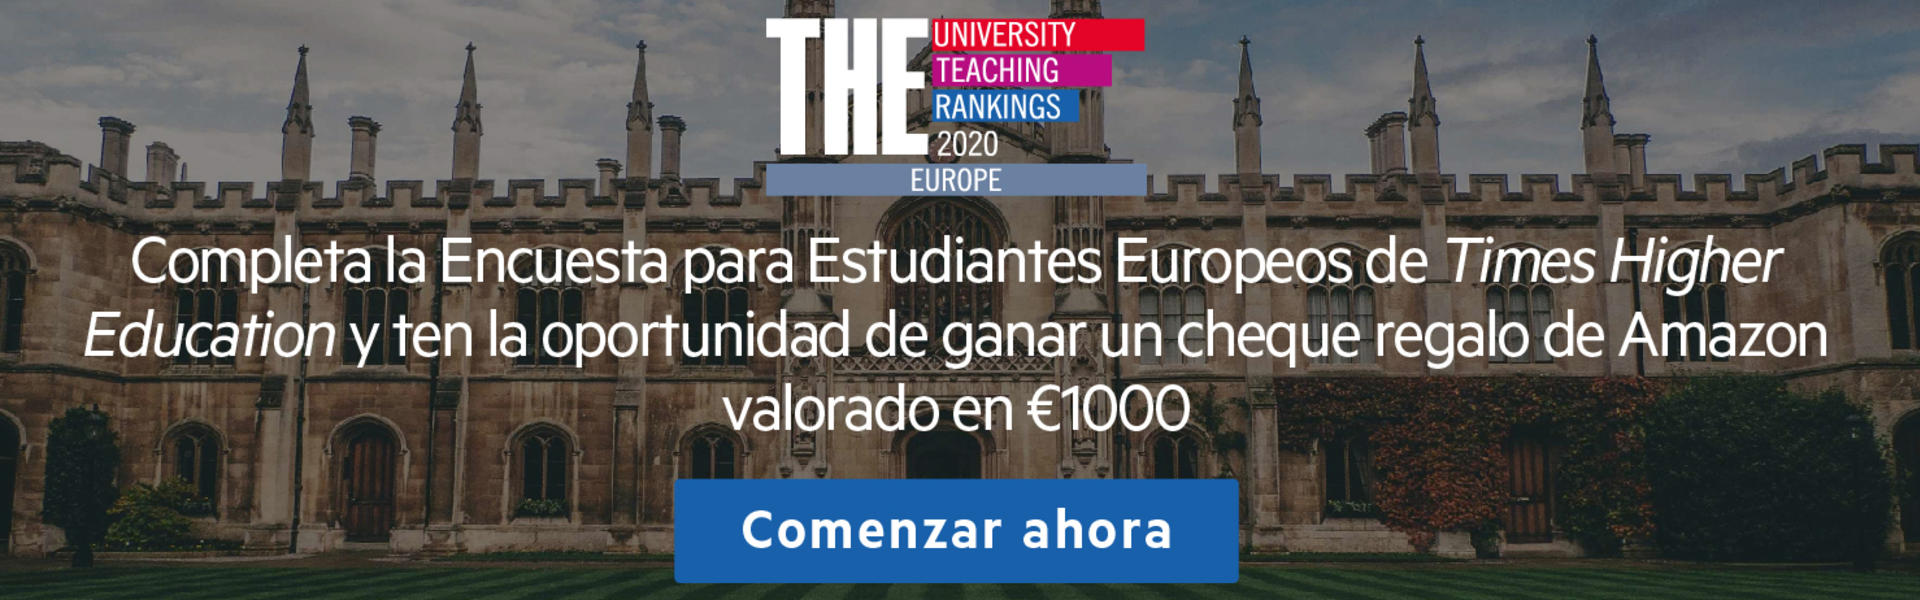 Encuesta Ranking THE (Times Higher Education)